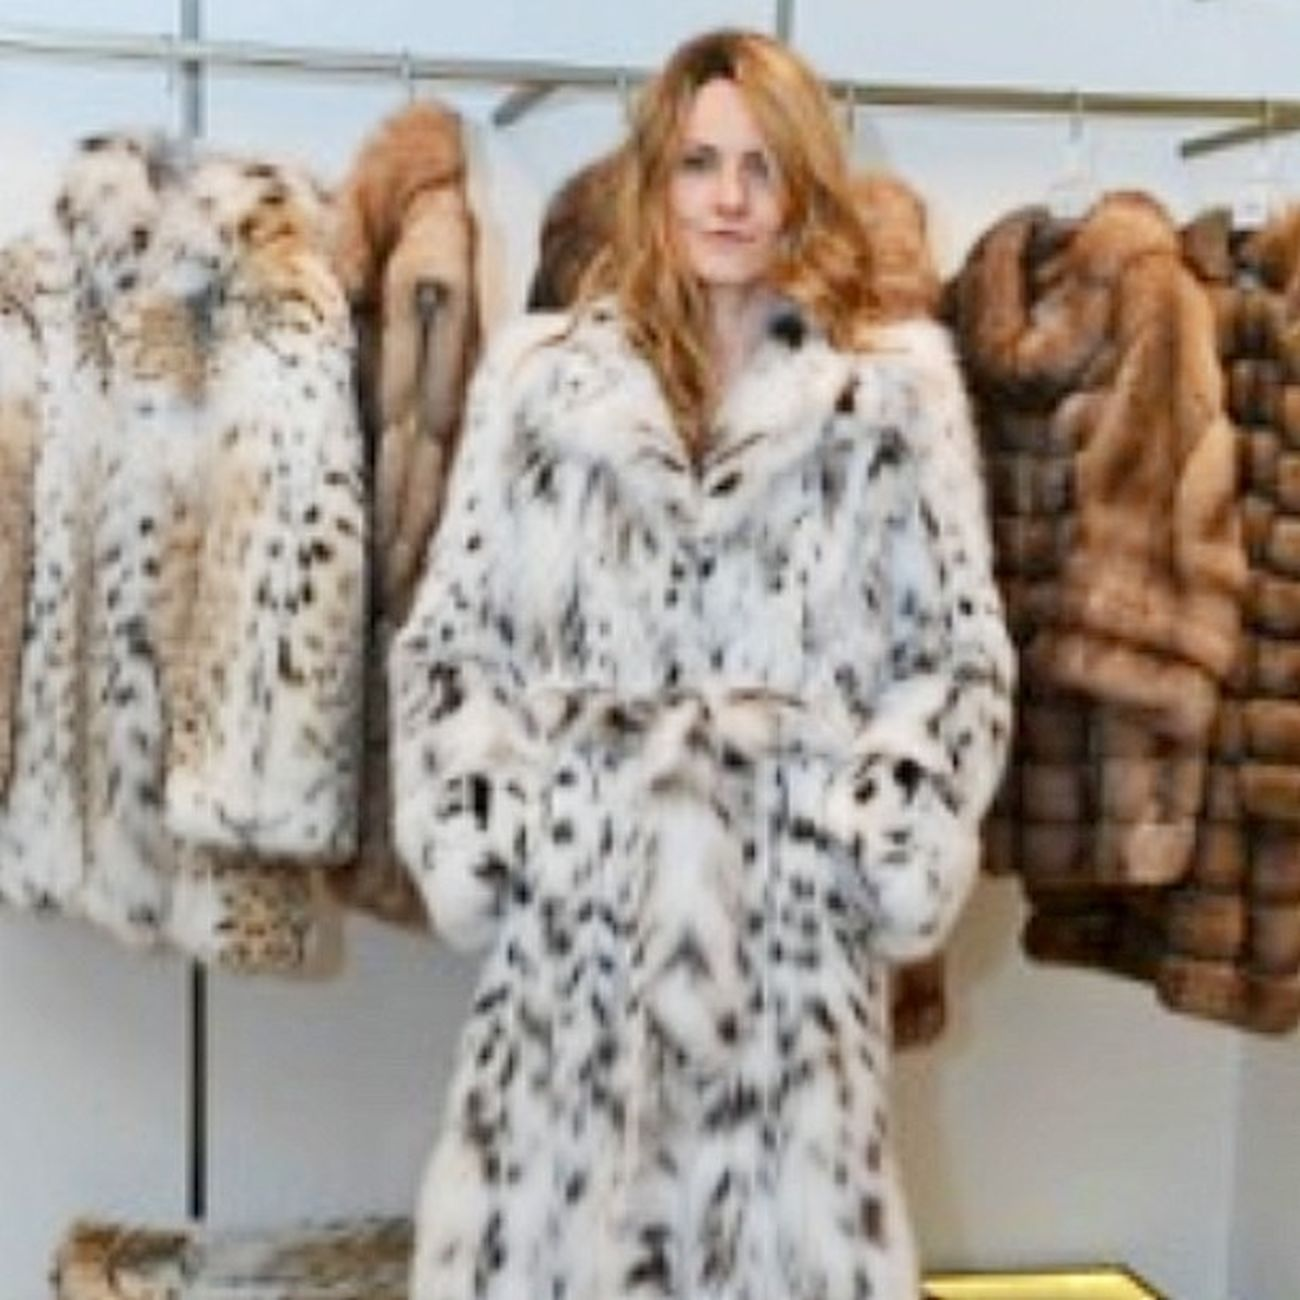 Ekaterina Mukhina, Fashion Editor Stylist at Daniel Benjamin Geneva in Moscow. Ekaterinamukhina Danielbenjamingeneva Danielbenjamin Moscow Russia Geneva Switzerland Astana Kazakhstan fur lynx fashioneditor luxury fashion @ekaterinamukhina @danielbenjamingeneva